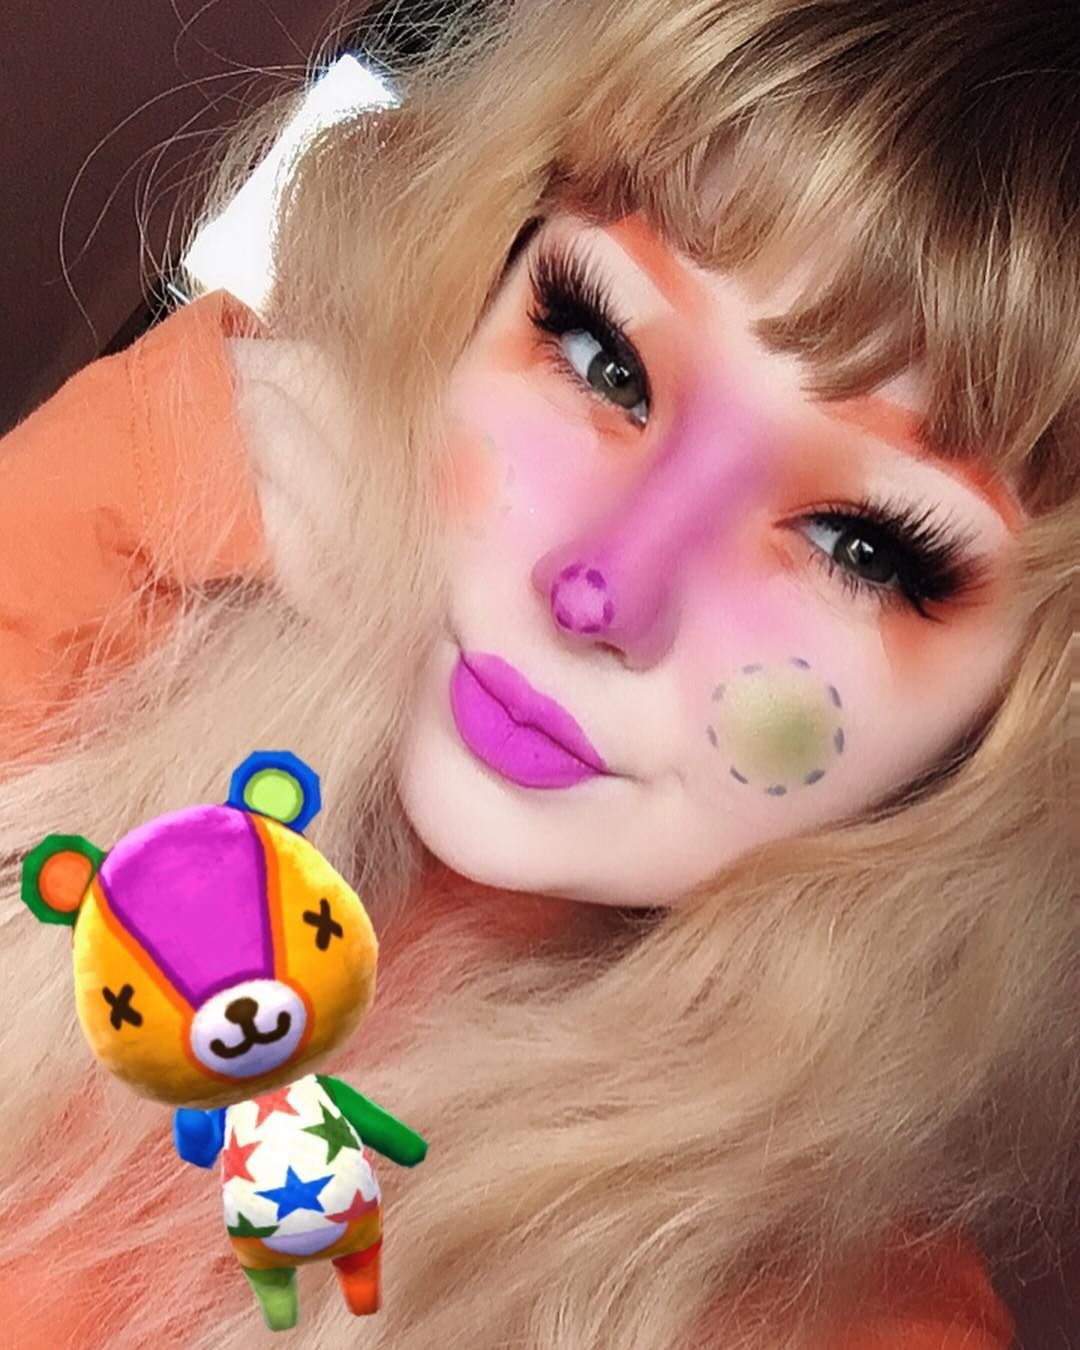 stitches ! 🧡 animalcrossing Animal crossing, Makeup